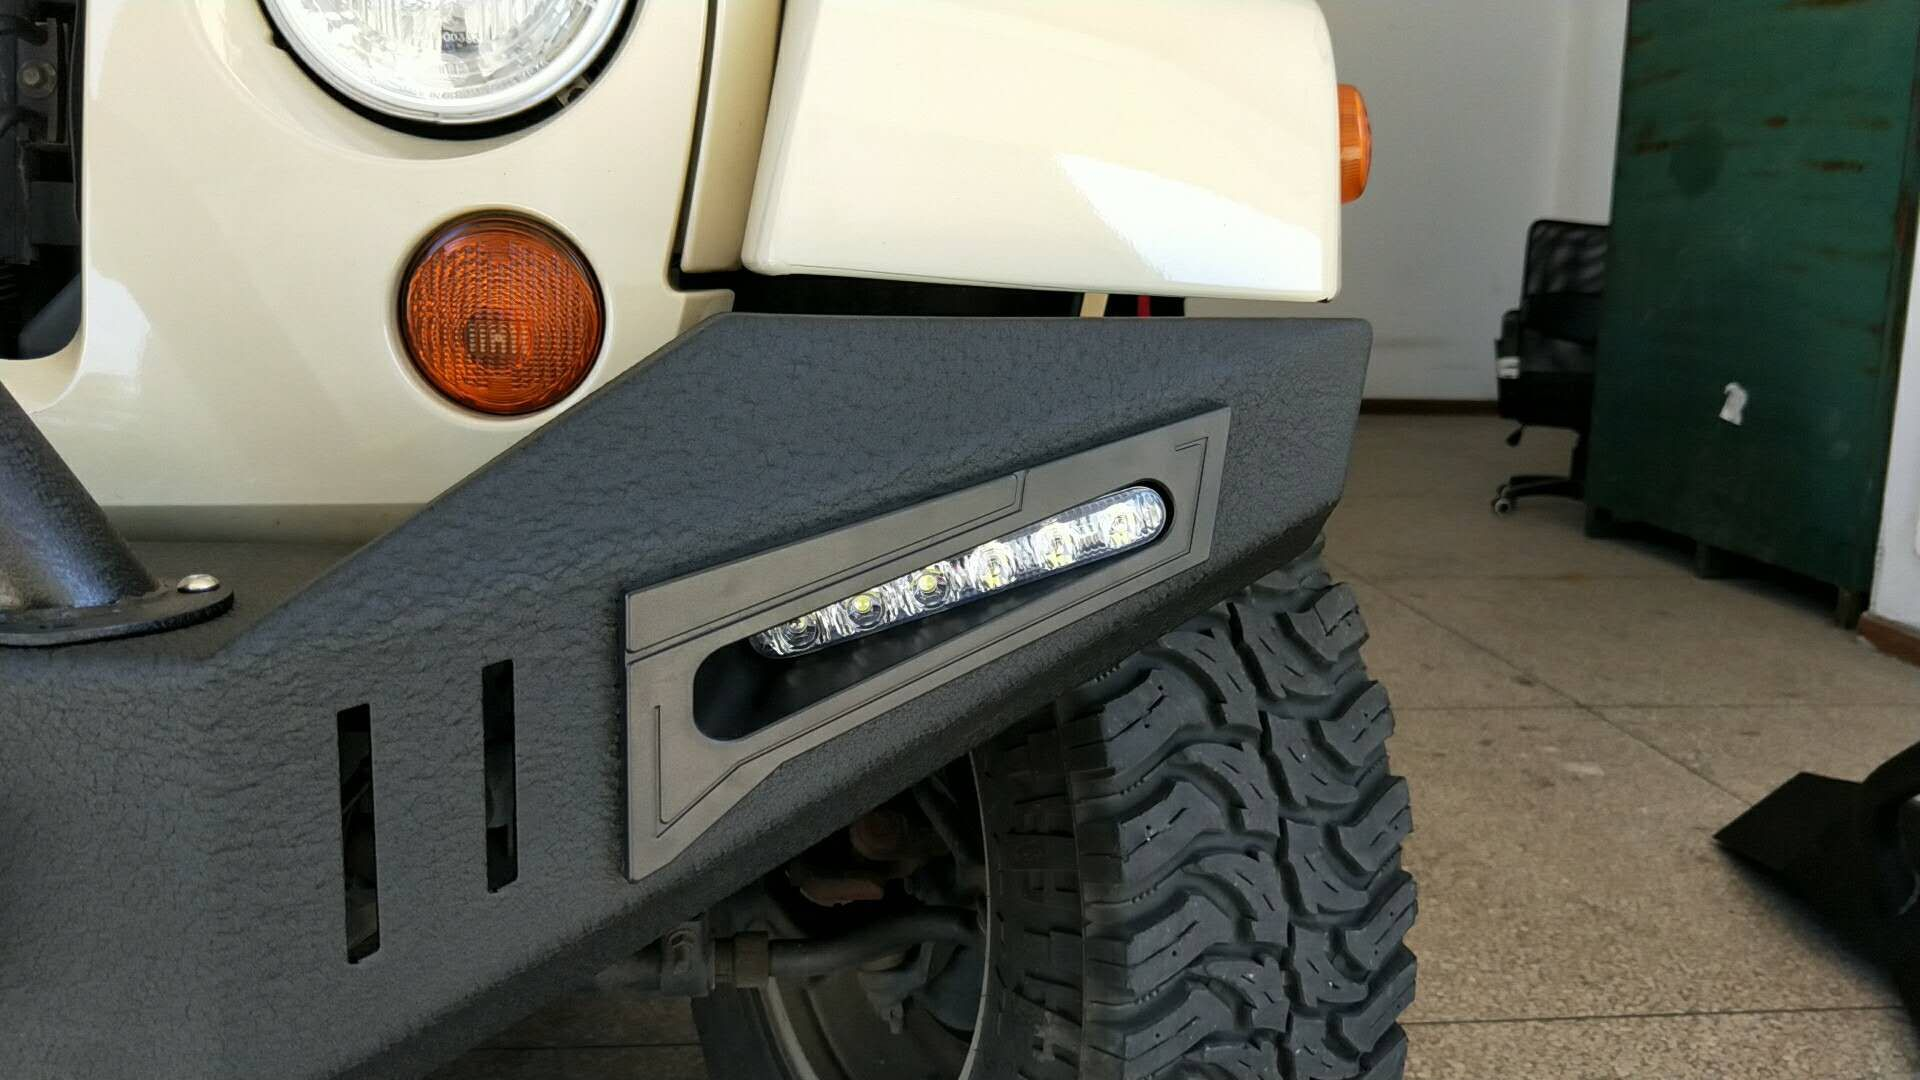 Picture Of A Jk Warehouse Custom Design Front Bull Bar With Led Lights On Special Jeep Wrangler Front Bumper Offroad Accessories Bull Bar